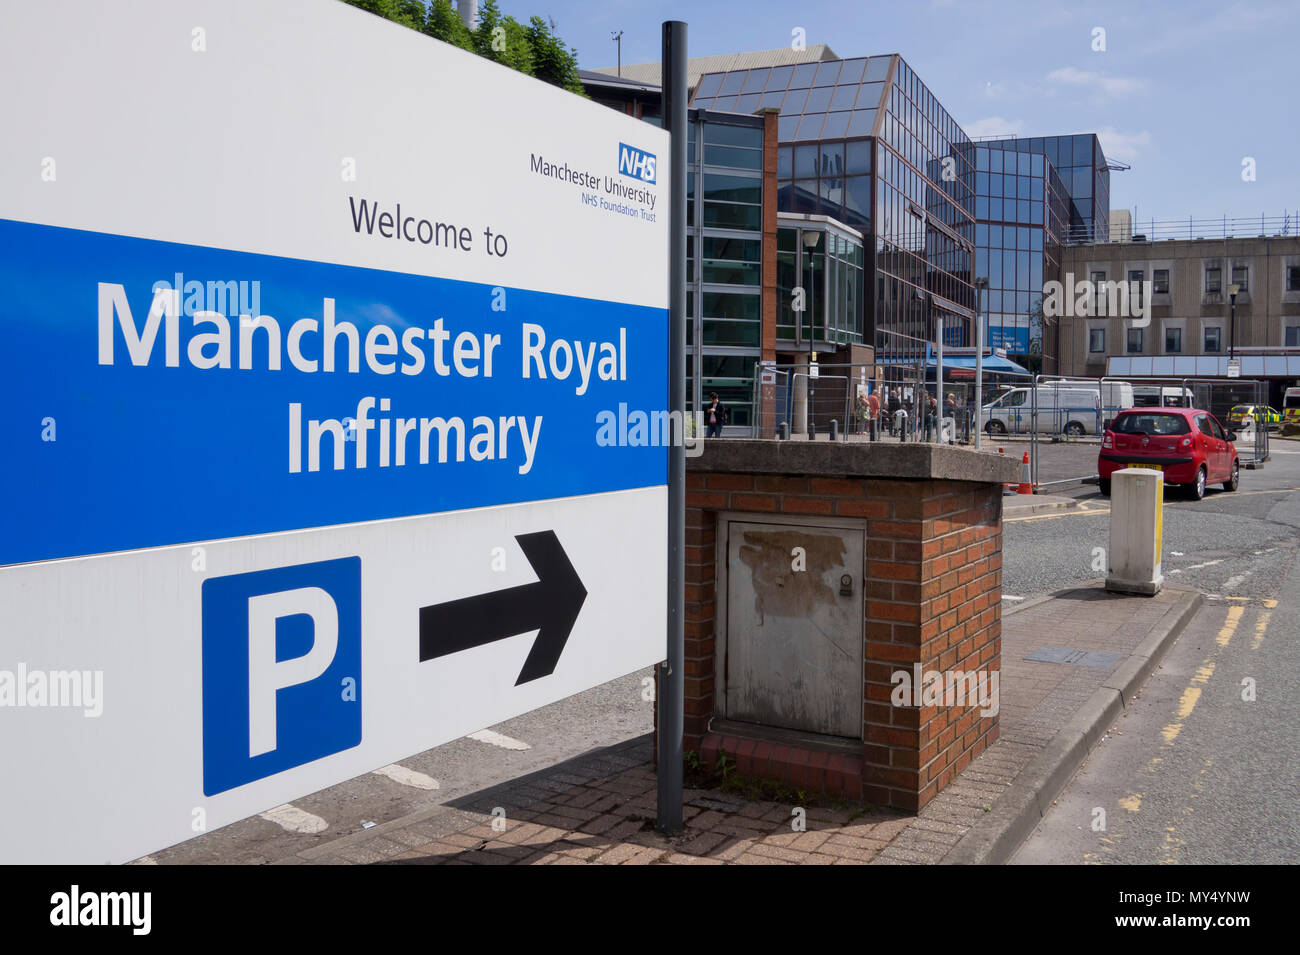 Signage to the entrance of Manchester Royal Infirmary (MRI). - Stock Image